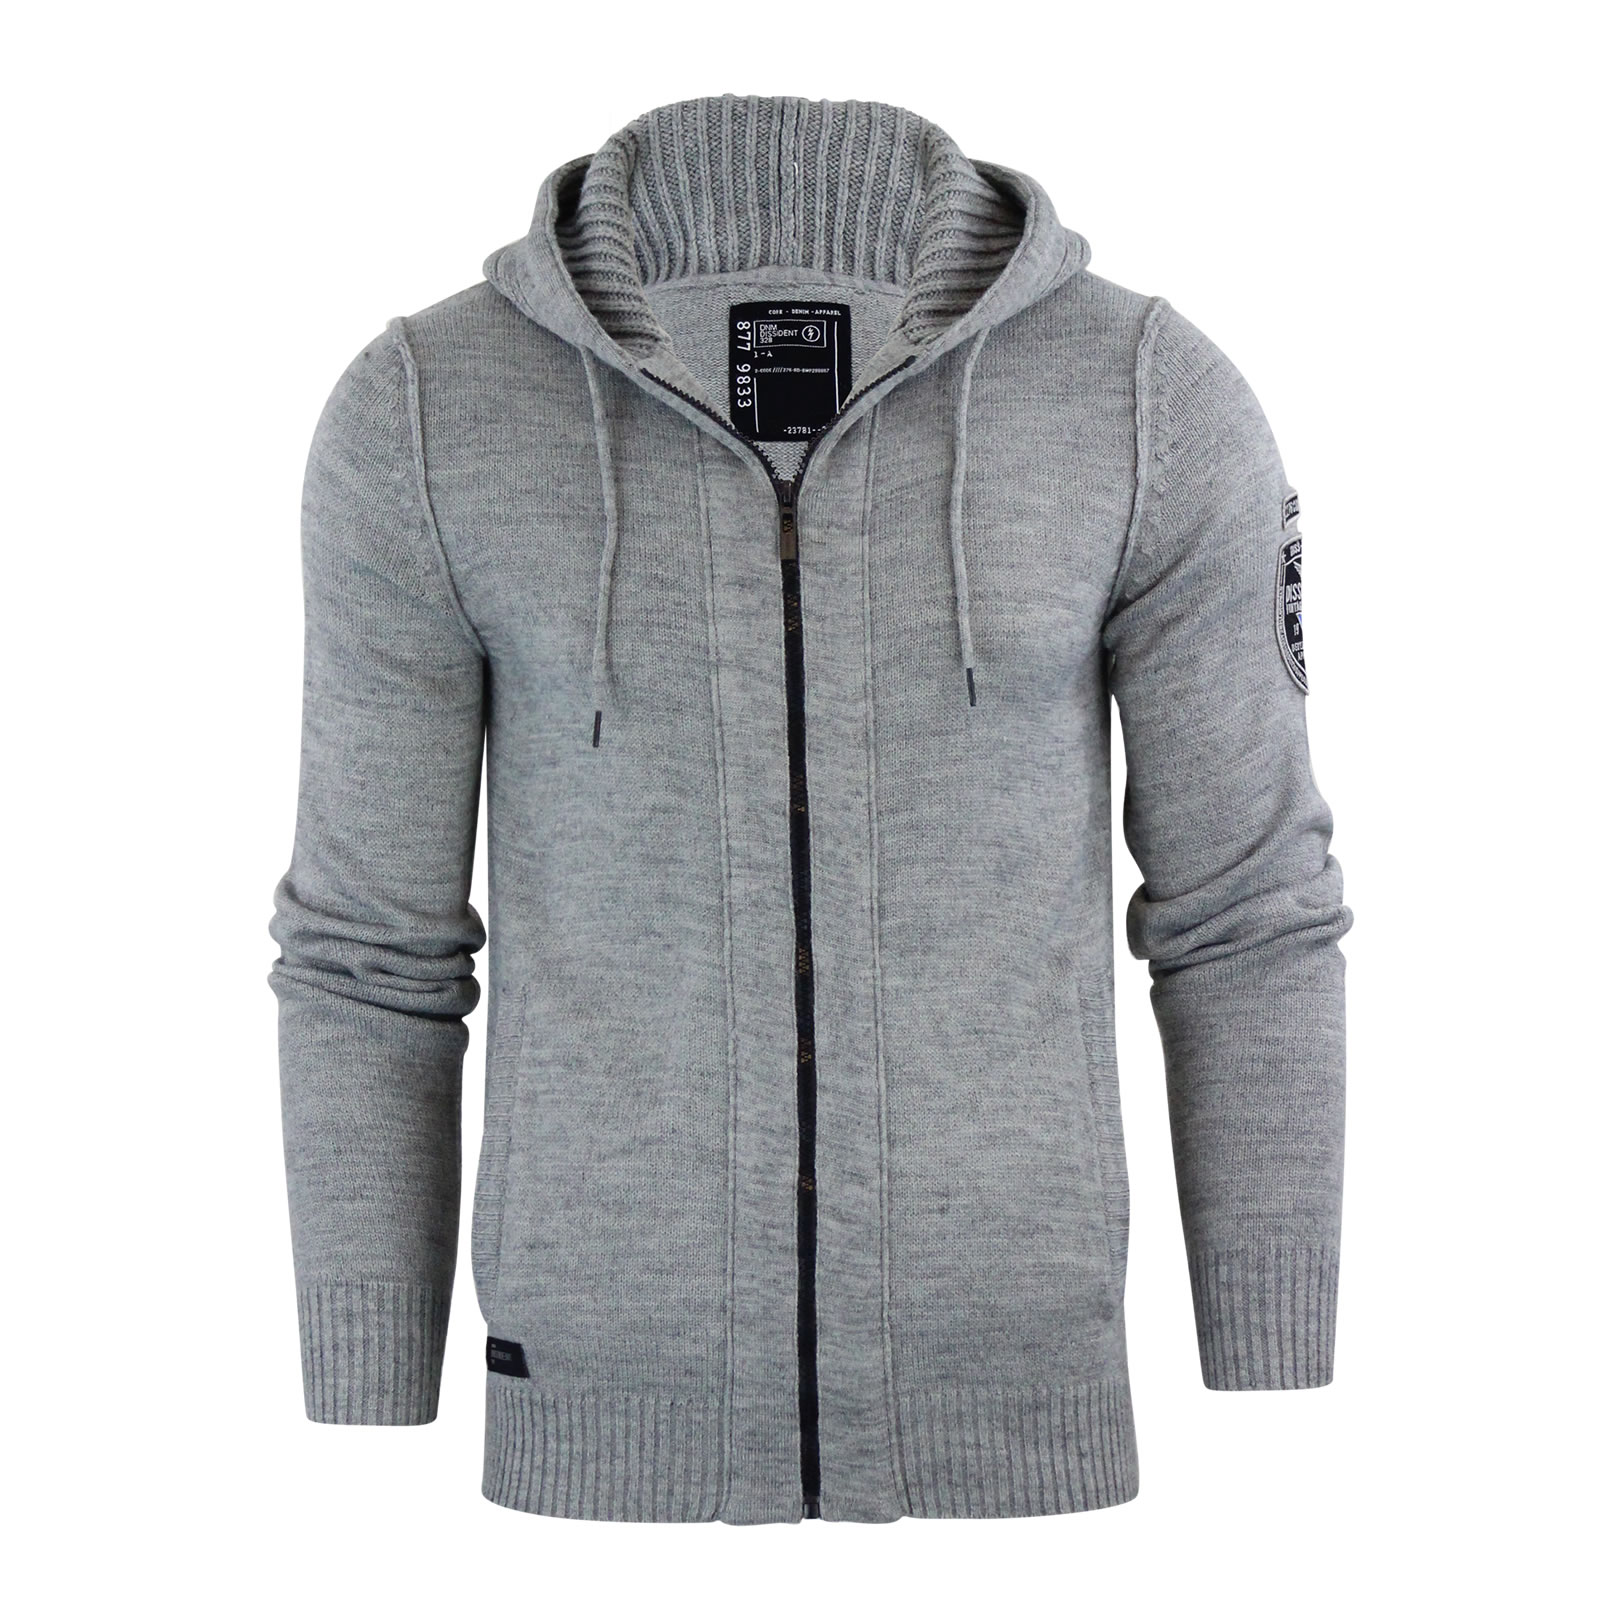 Mens Hooded Cardigan Dissident Zissou Zip Up Wool Mix Jumper ...